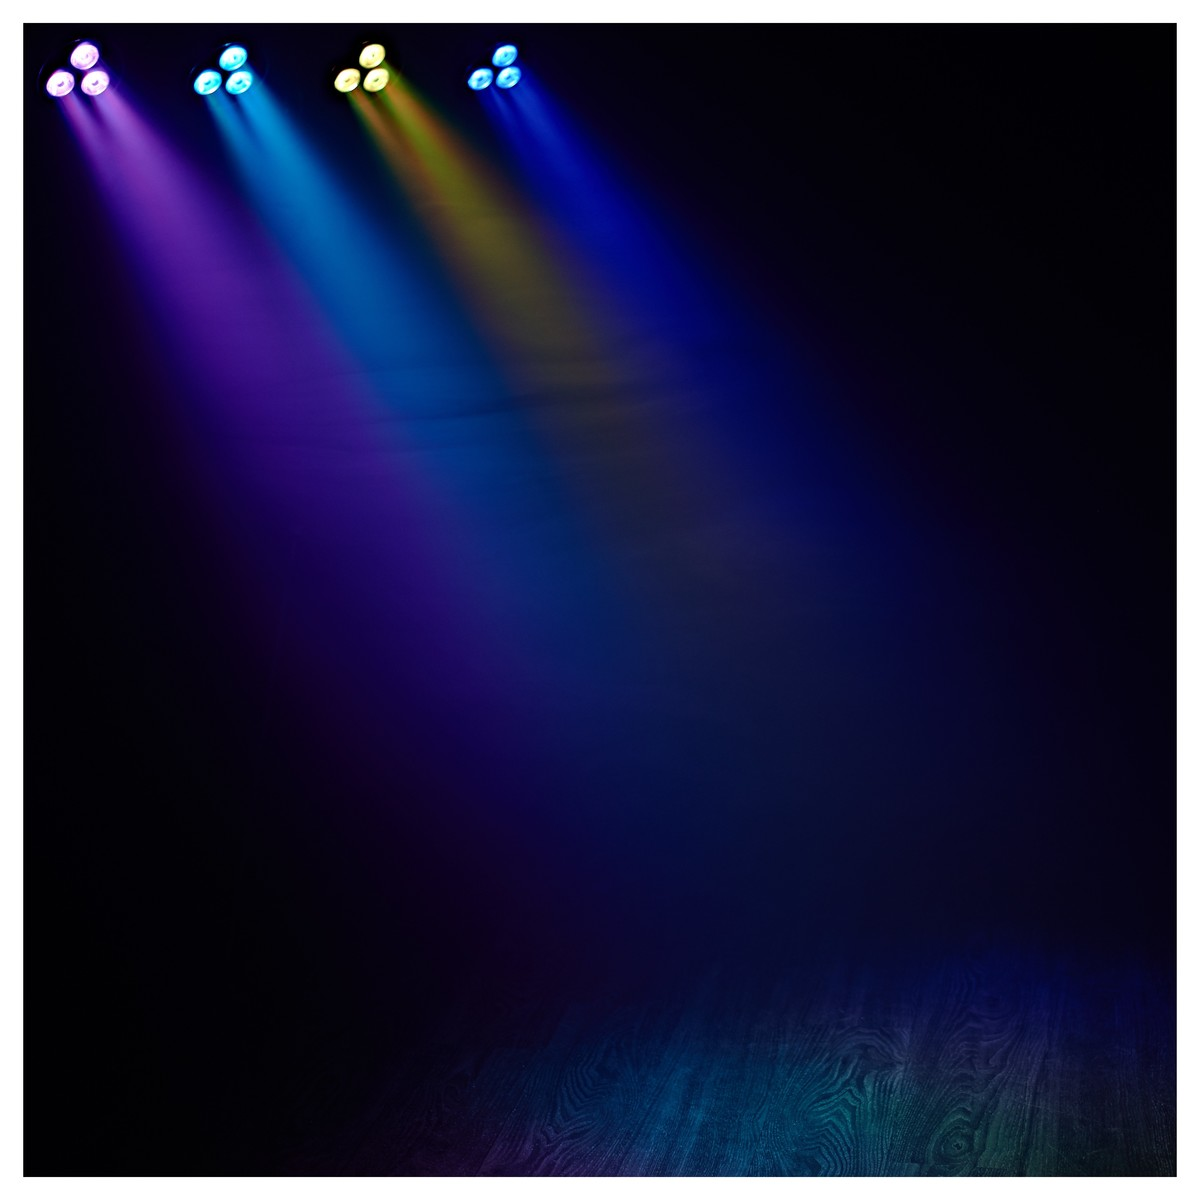 Cosmos 108W Fog And Stage Light Package by Gear4music at Gear4music 0d88421fc48a